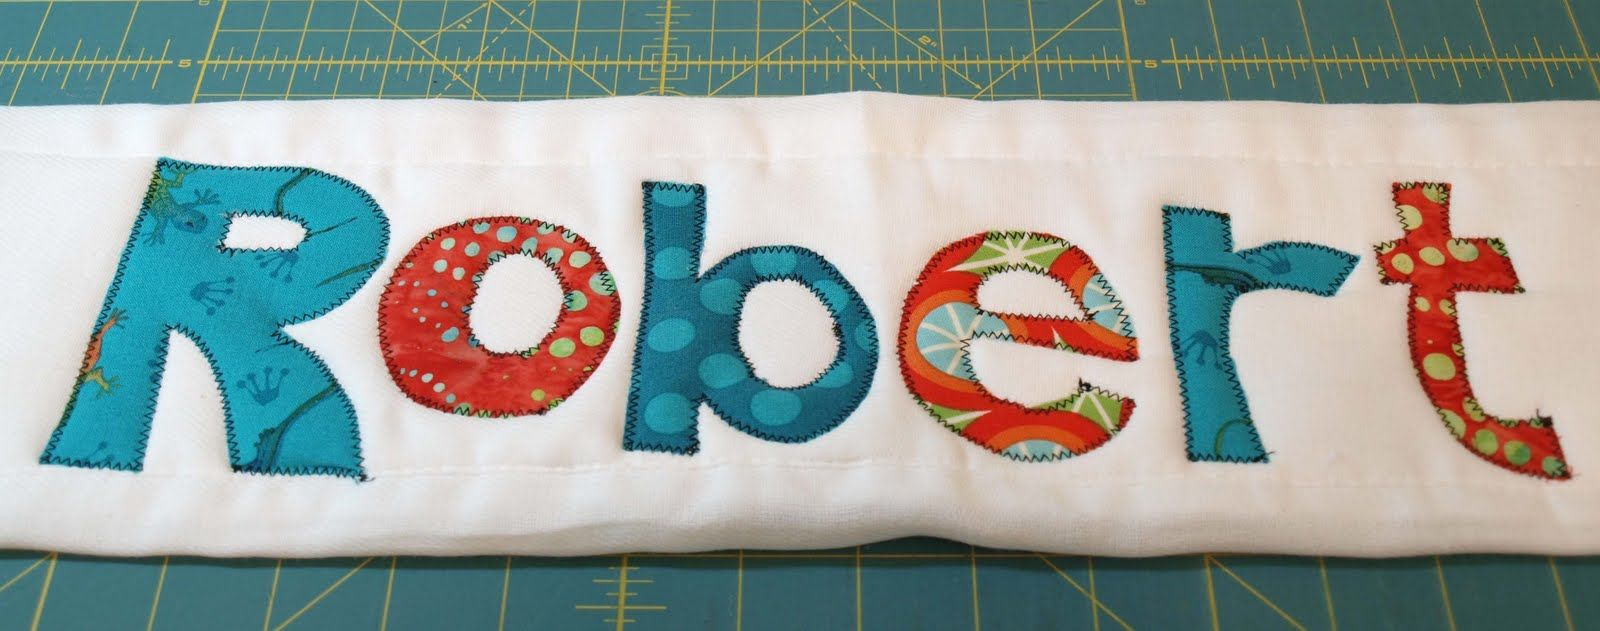 Burpcloth applique tutorial the seasoned homemaker lettering and